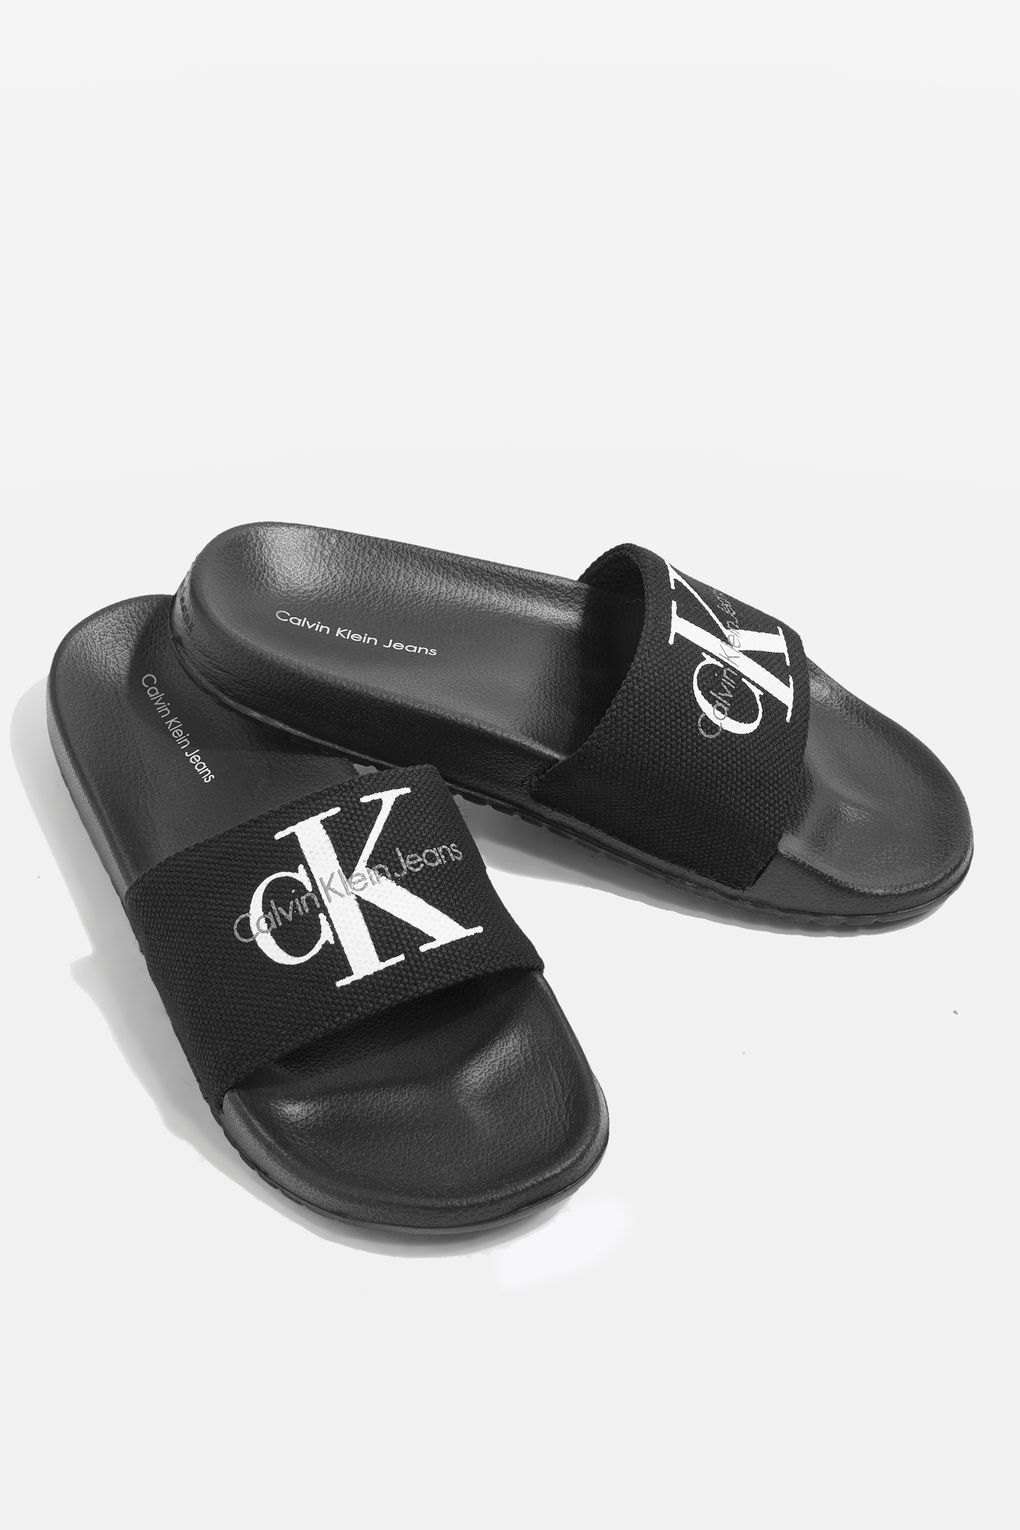 Jean Sliders by Calvin Klein - Shoes- Topshop 8244fc6ac0